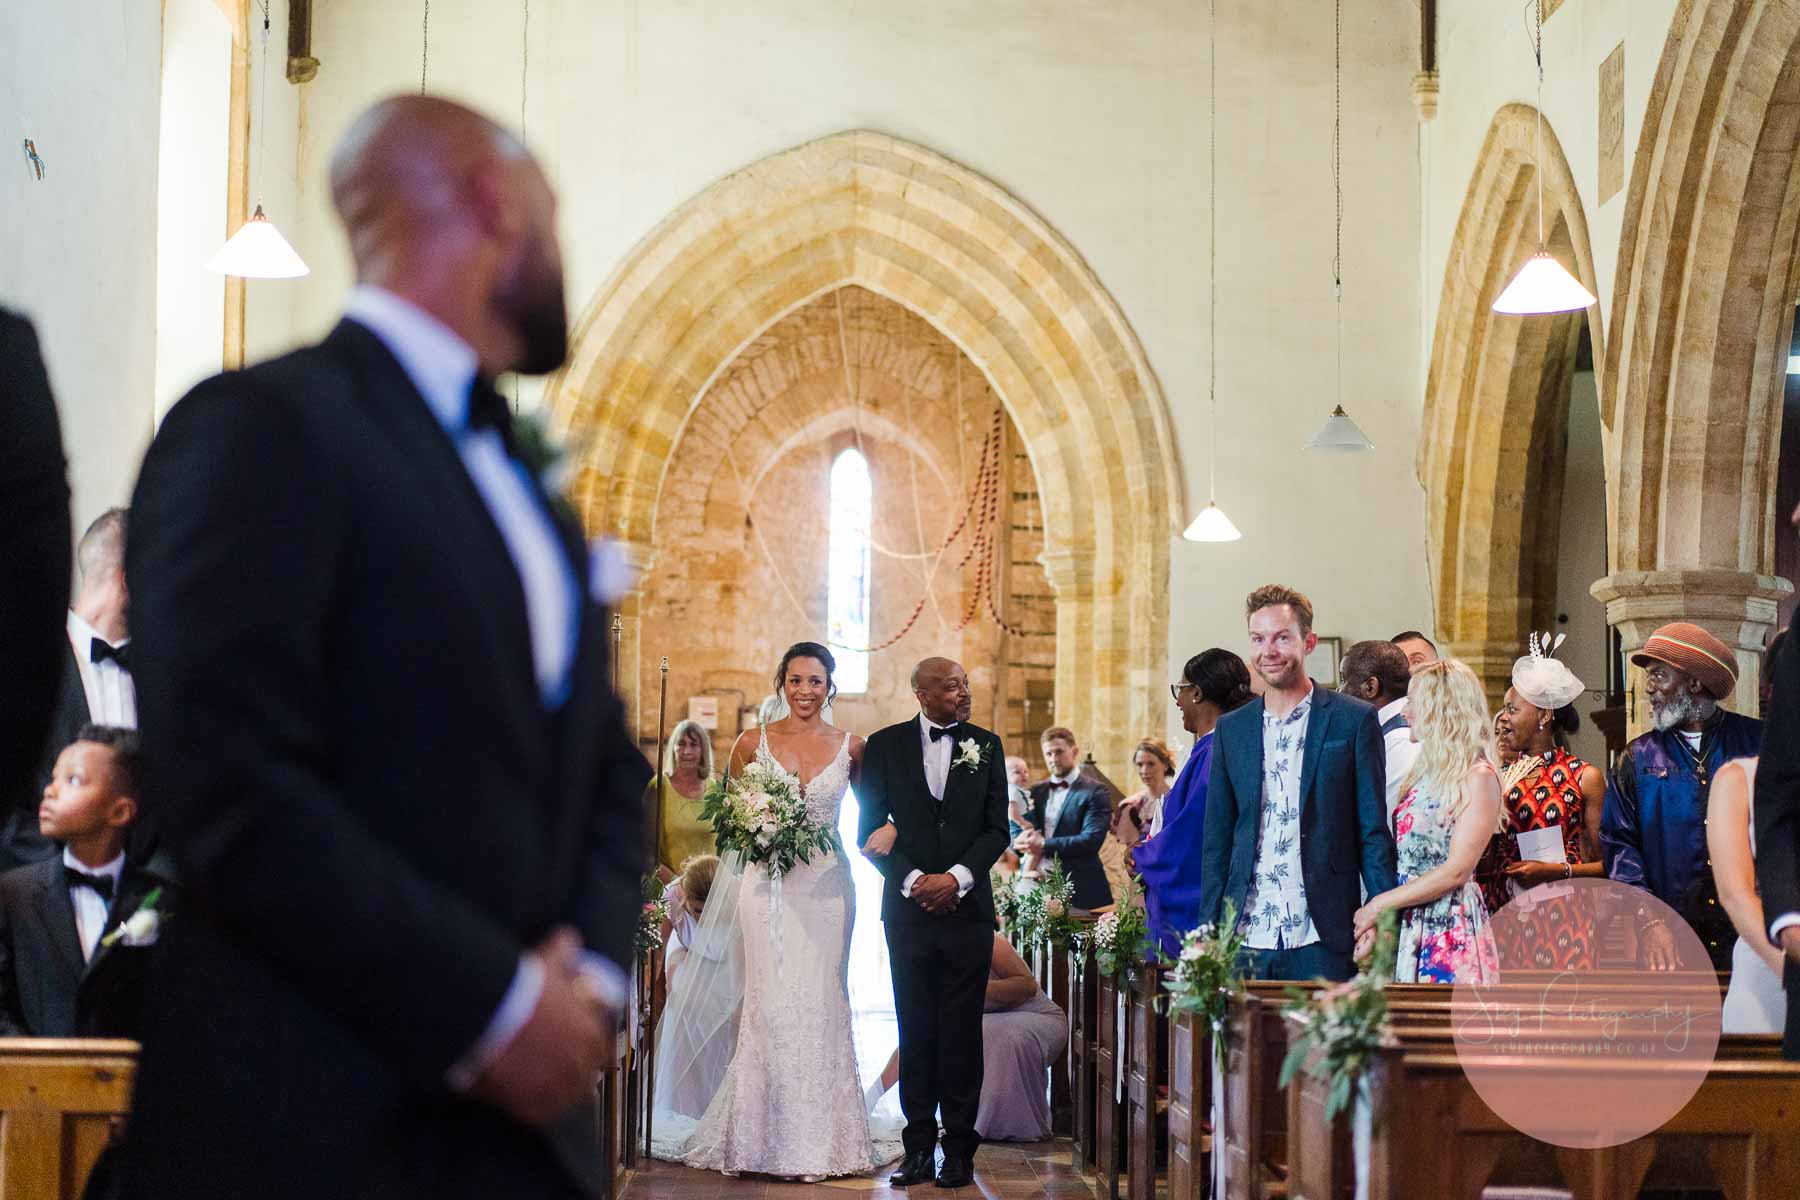 Father and daughter walk down the aisle with an emotional groom looking on